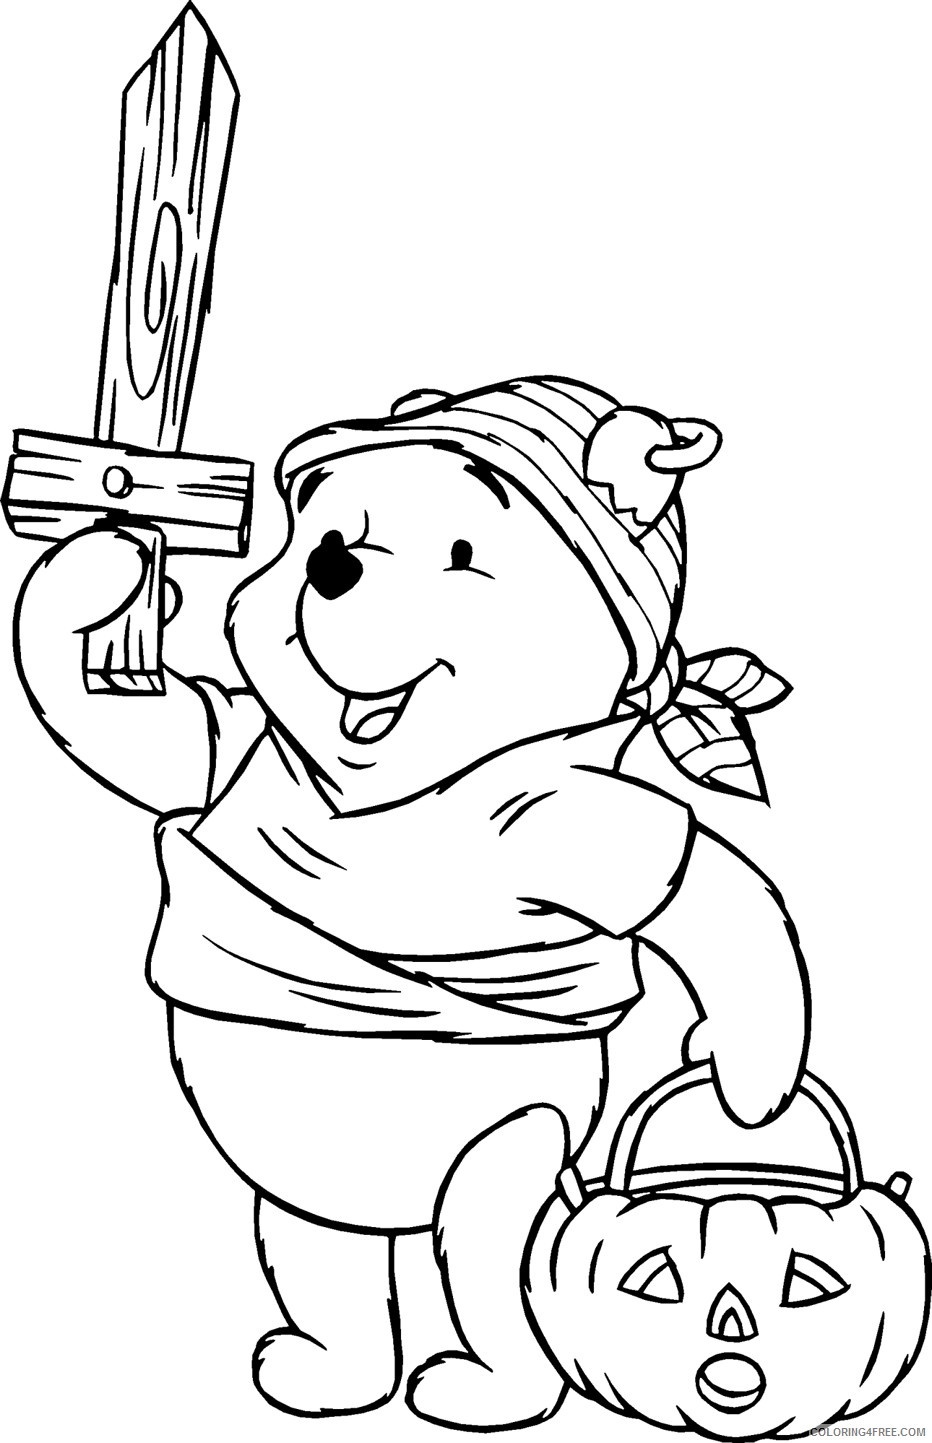 happy halloween coloring pages winnie the pooh Coloring4free